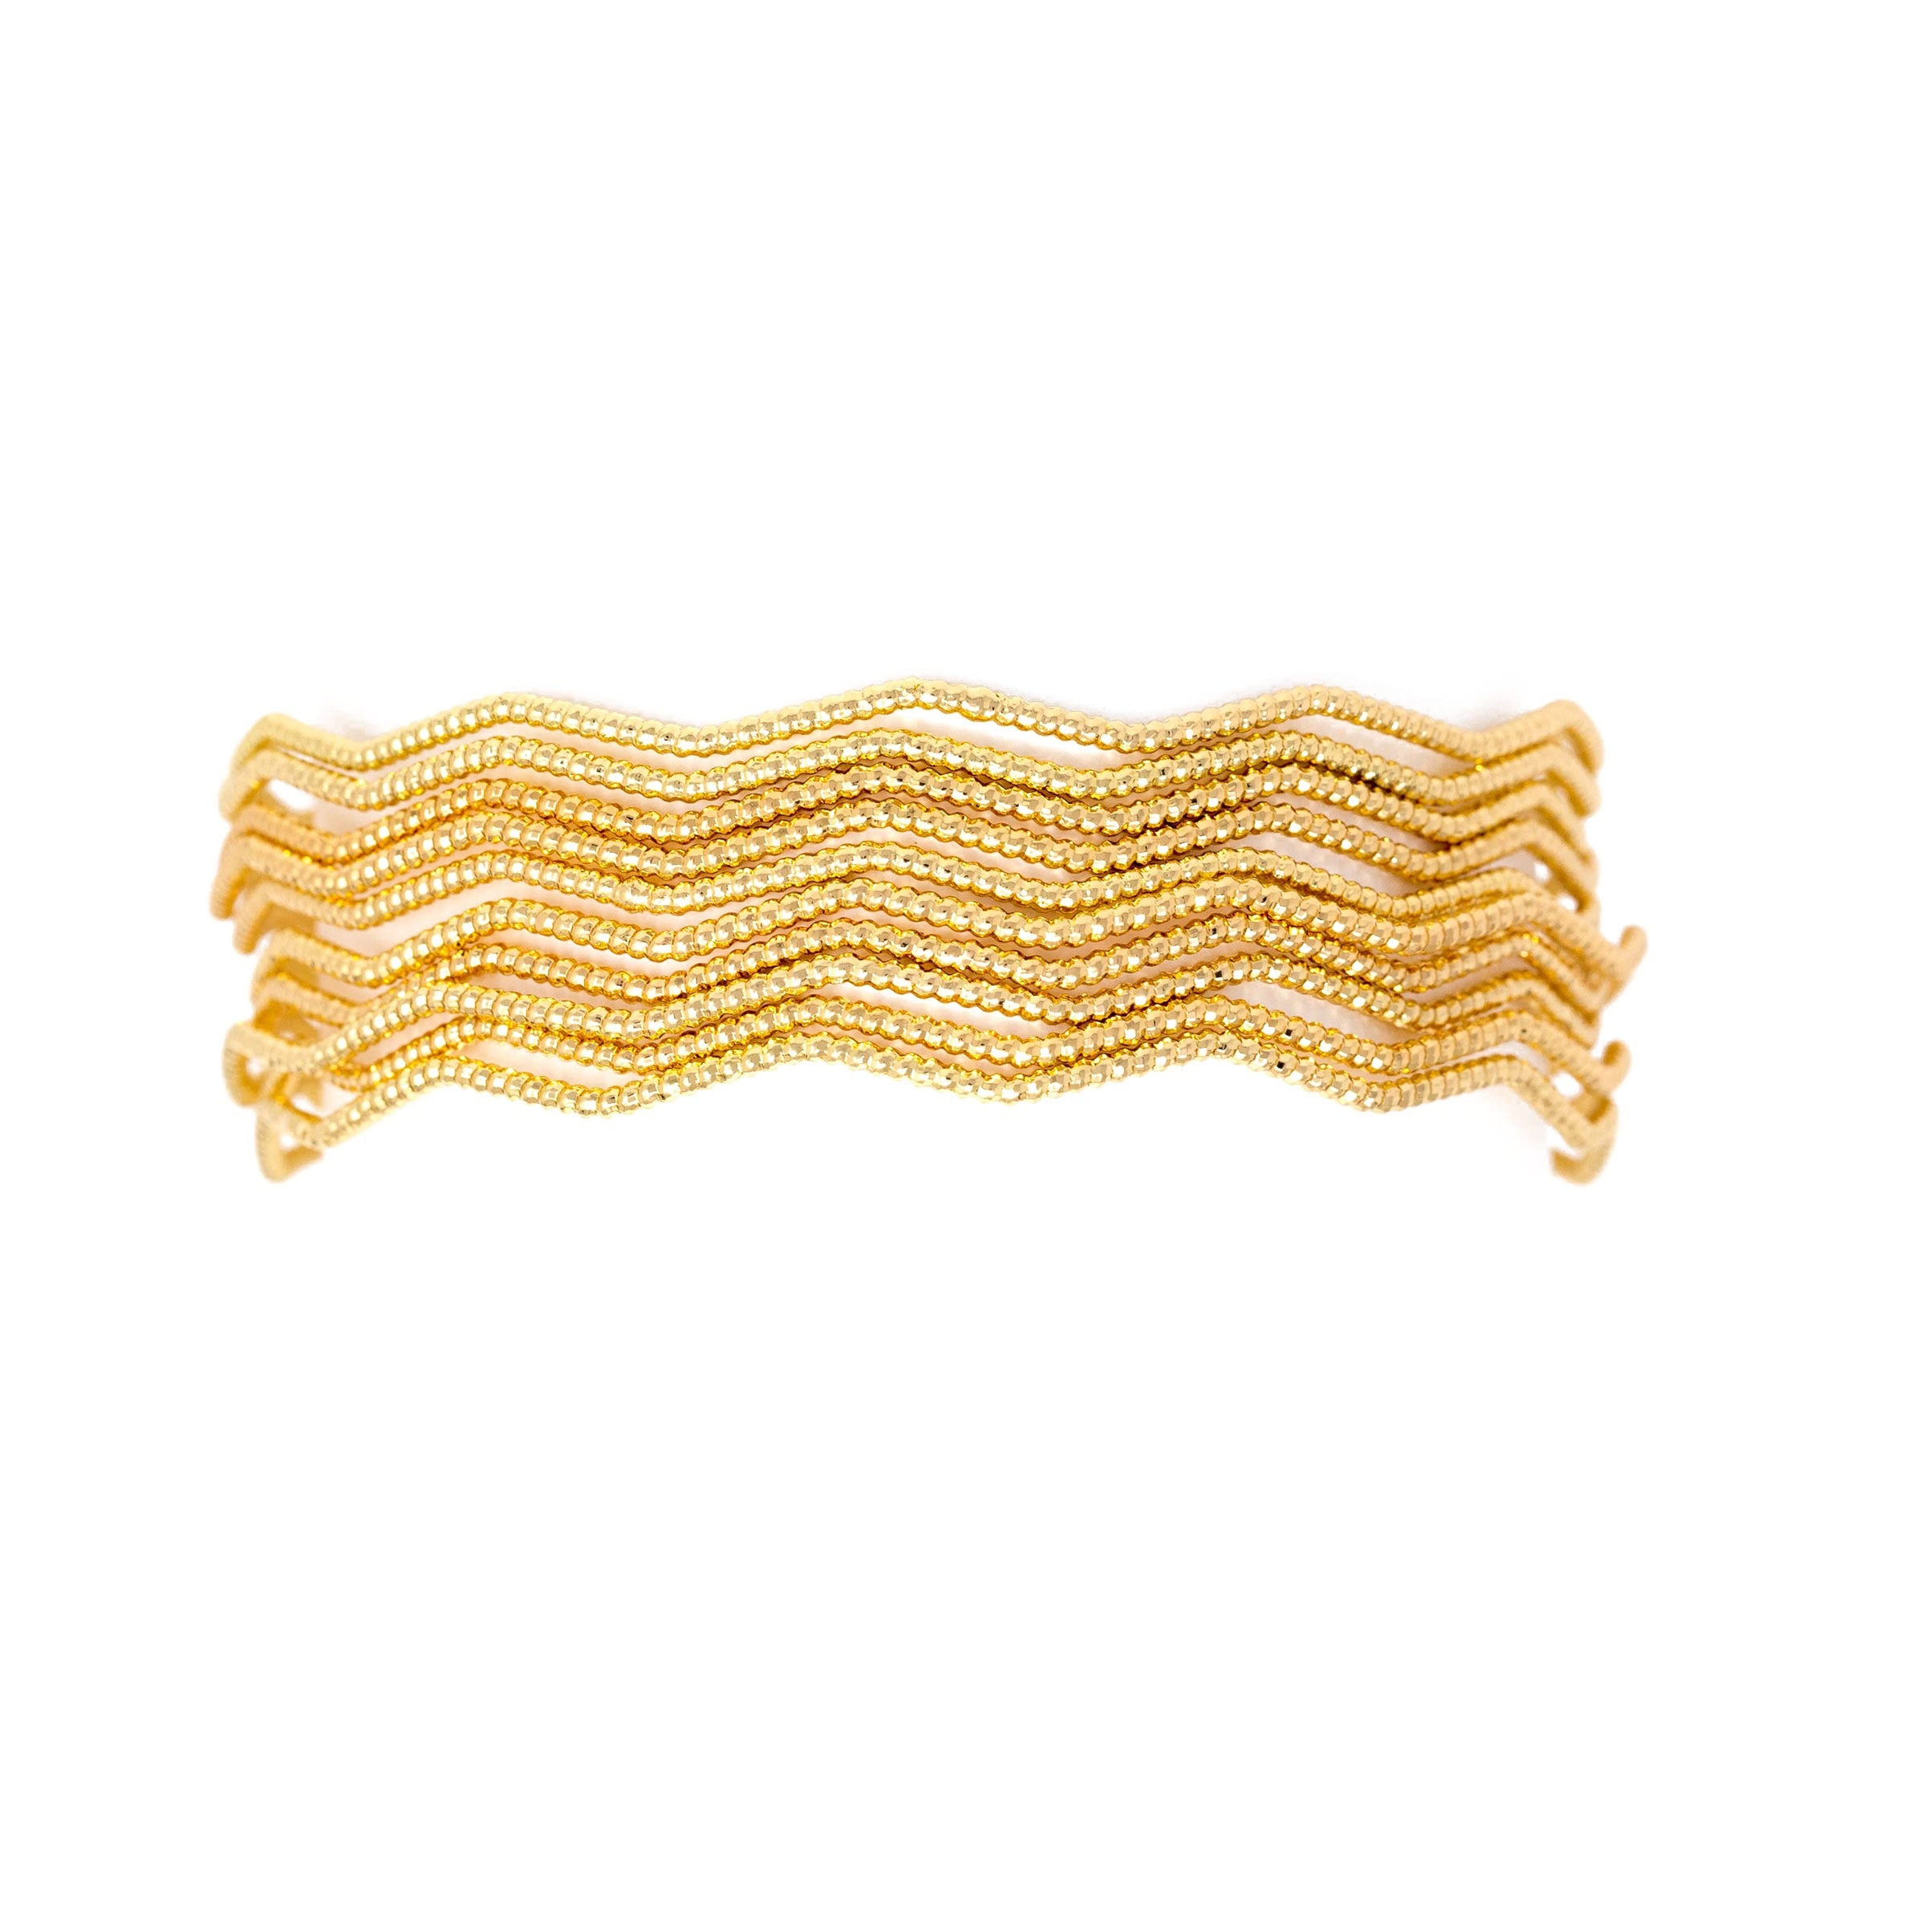 clustered original online powered store sitare jewellery image bangles products by aasha gold